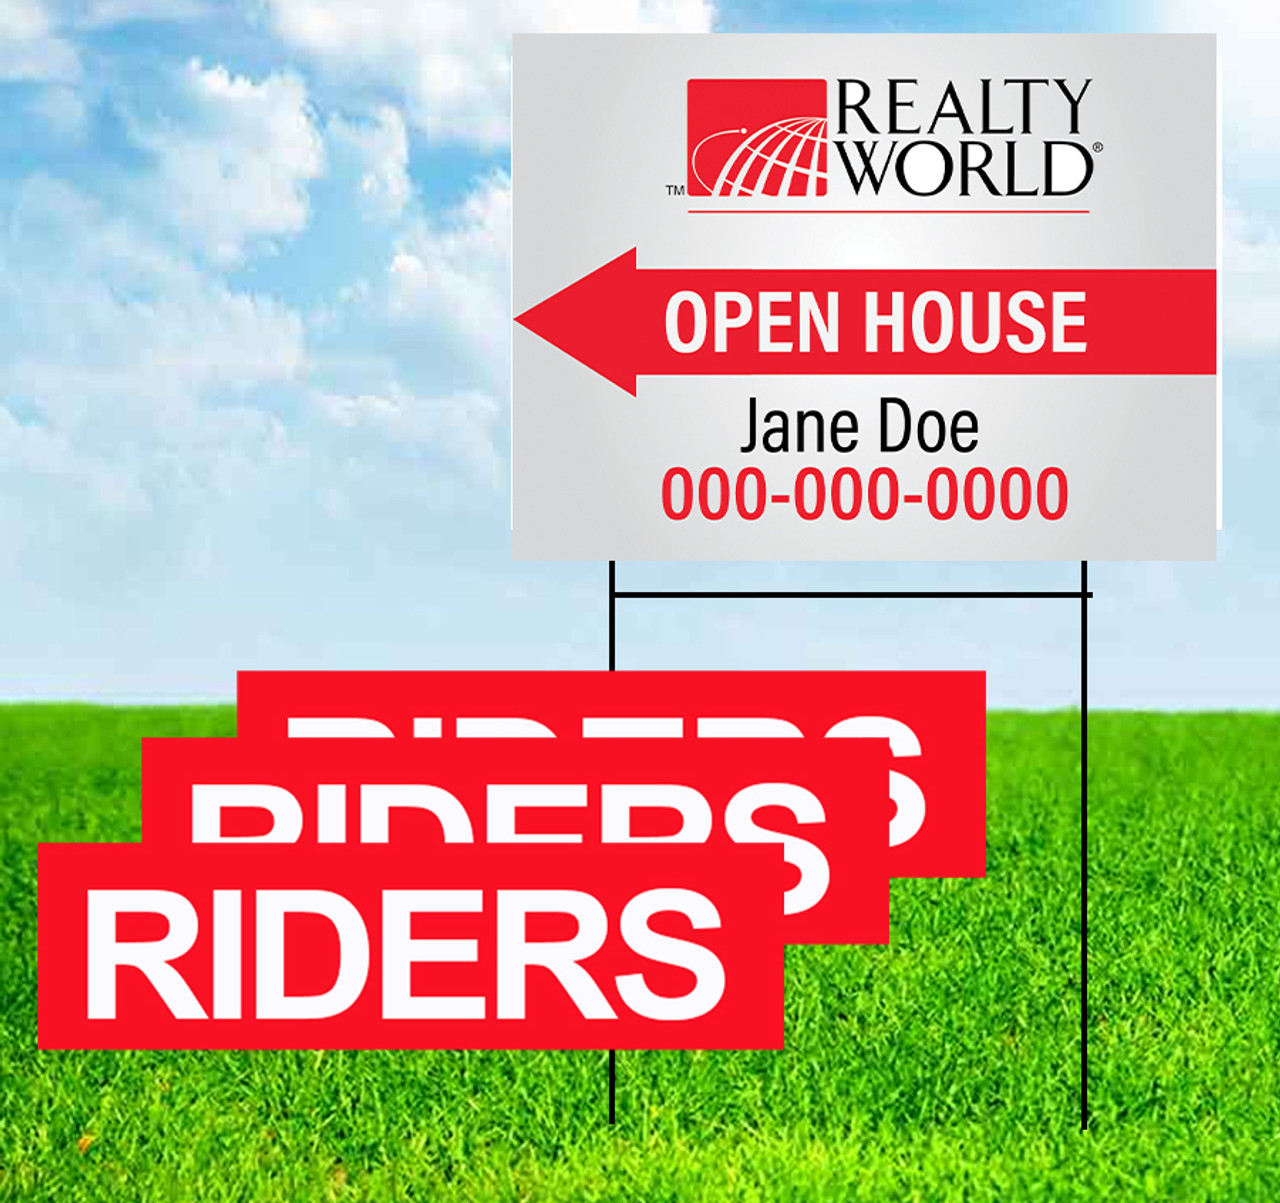 Open House and Riders